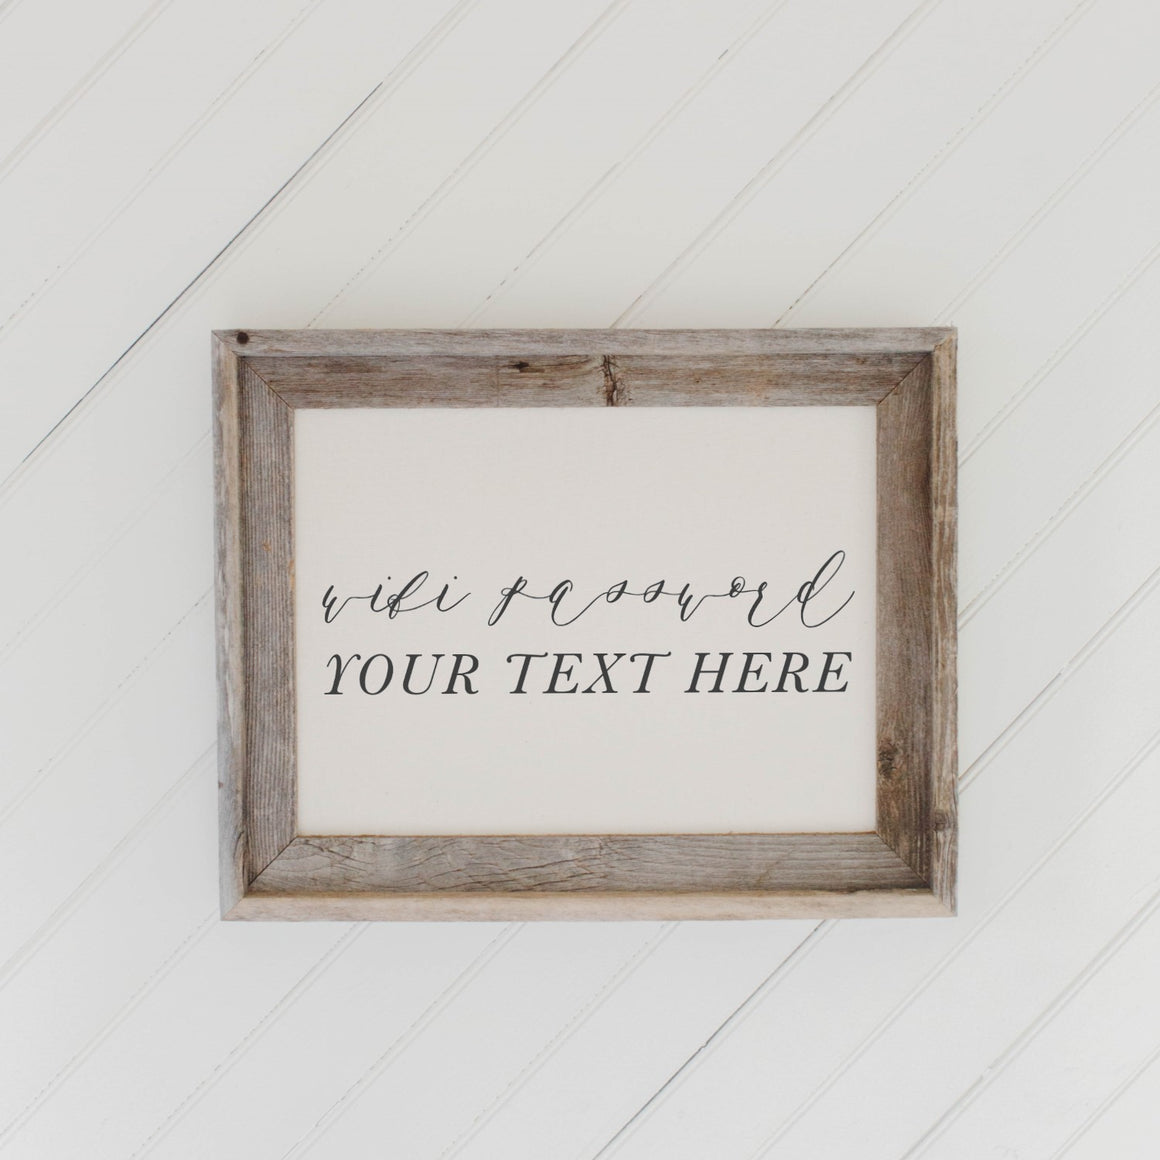 Personalized Wifi Password Barn Wood Framed Print